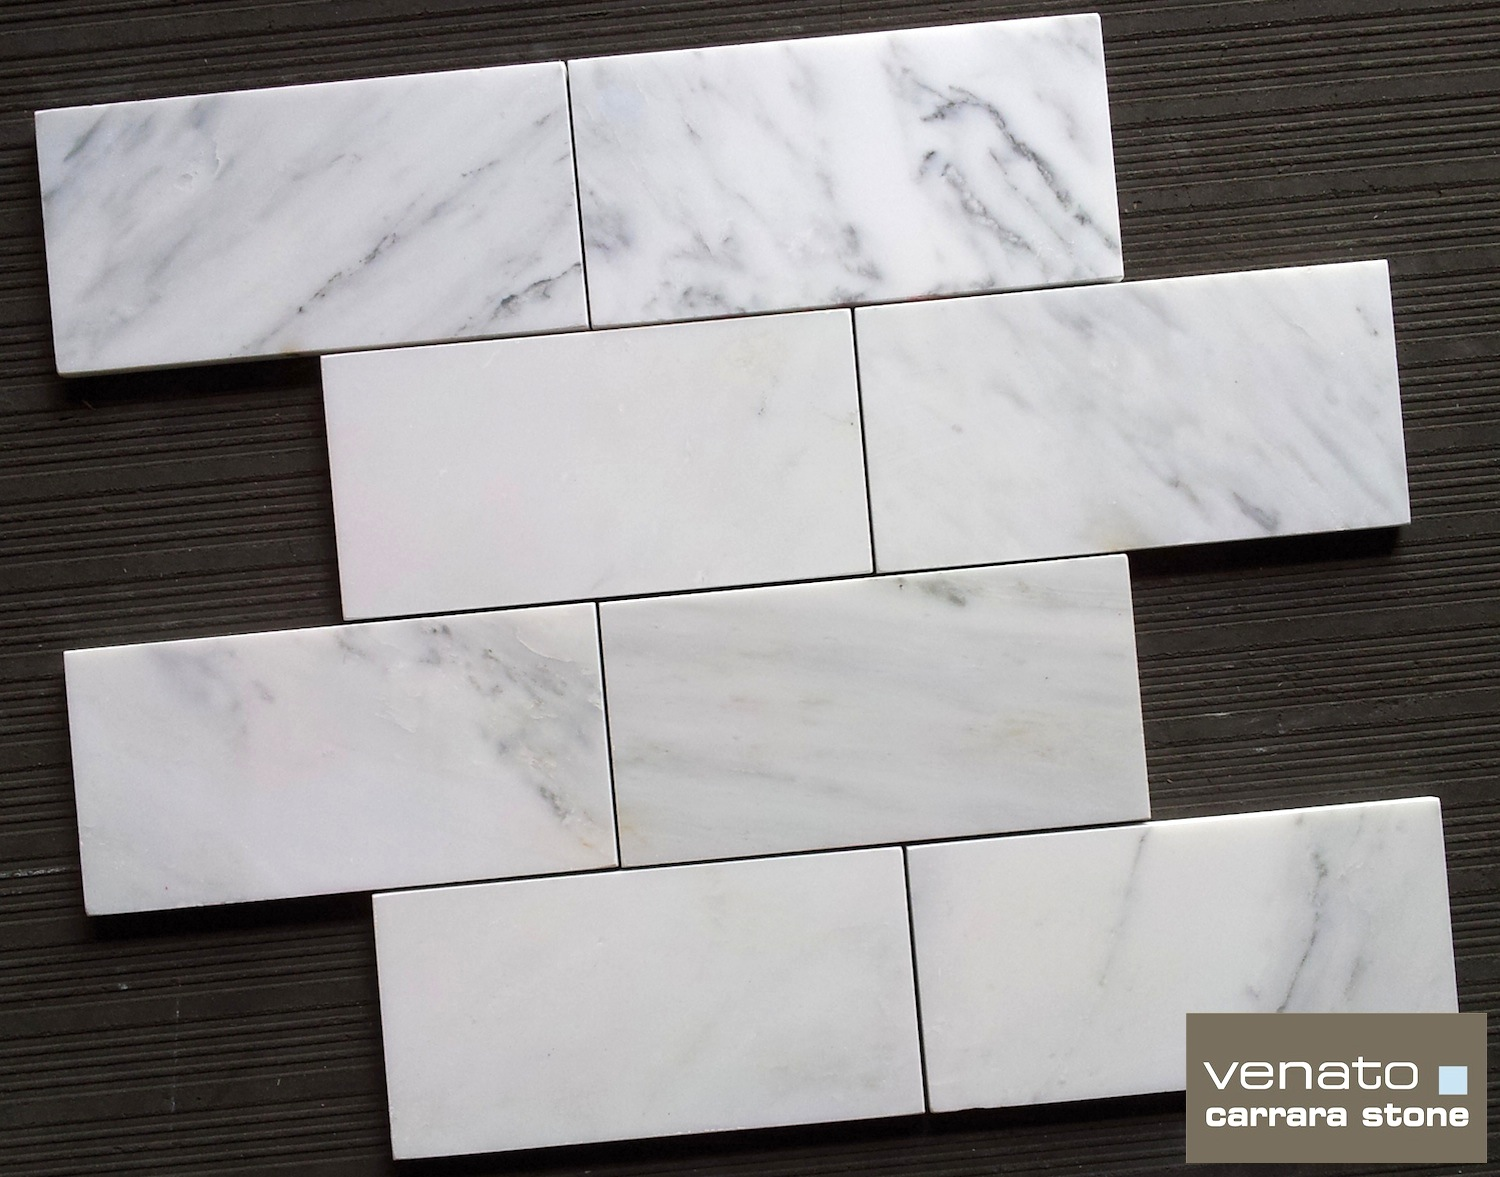 Carrara venato 48 subway tile the builder depot blog carrara venato 48 subway tile dailygadgetfo Gallery